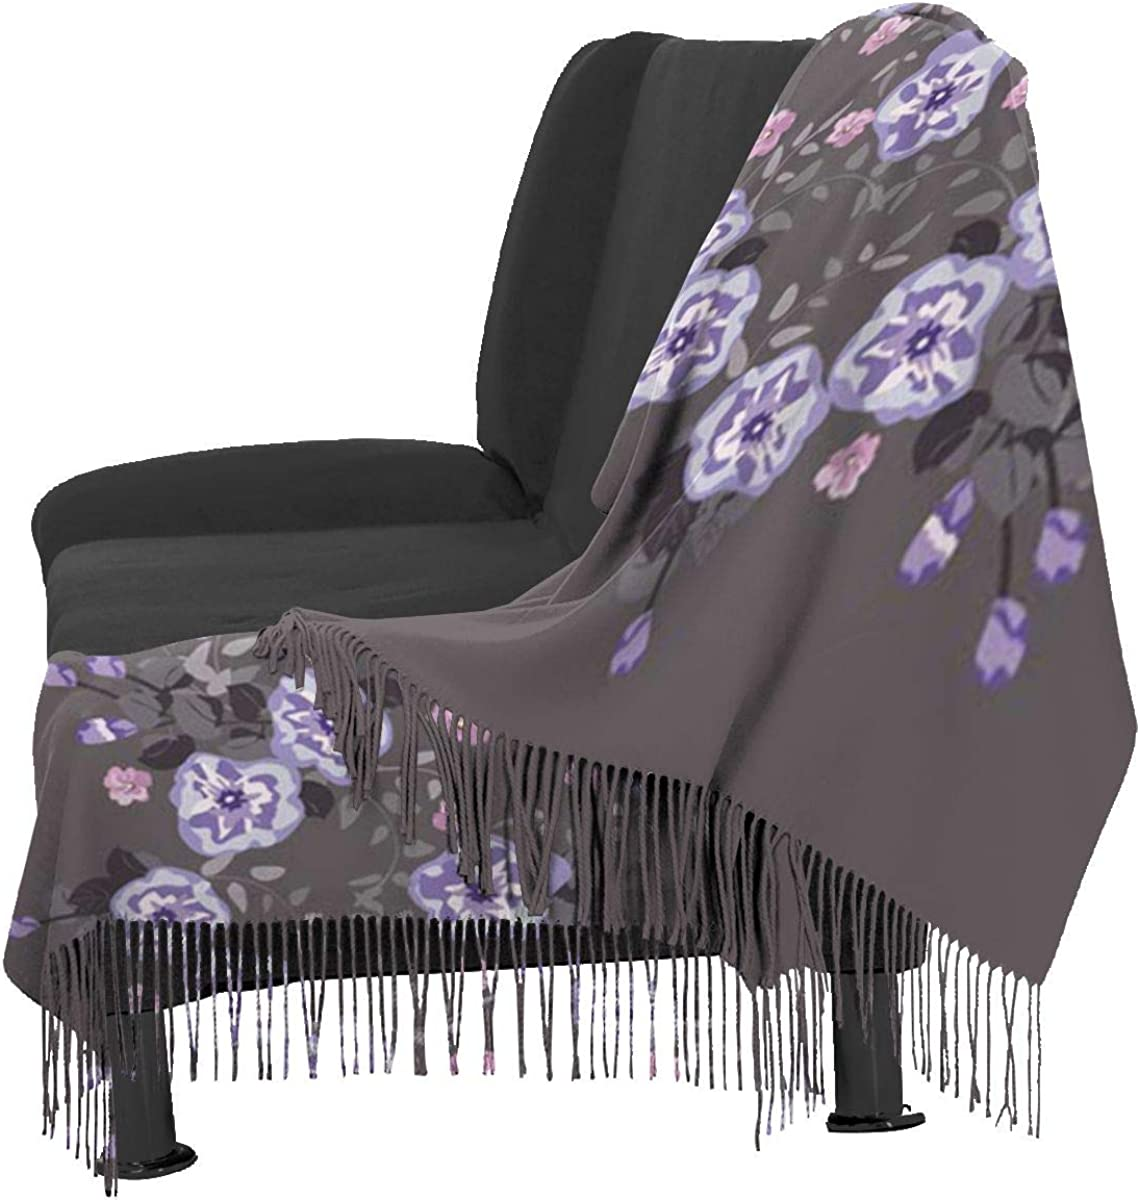 Cute Cuban Flower Composition Country Style Millefleurs Floral Garden Enchanting Scarf Decoupage Soft Cashmere Scarf For Women Fashion Lady Shawls,Comfortable Warm Winter Scarfs